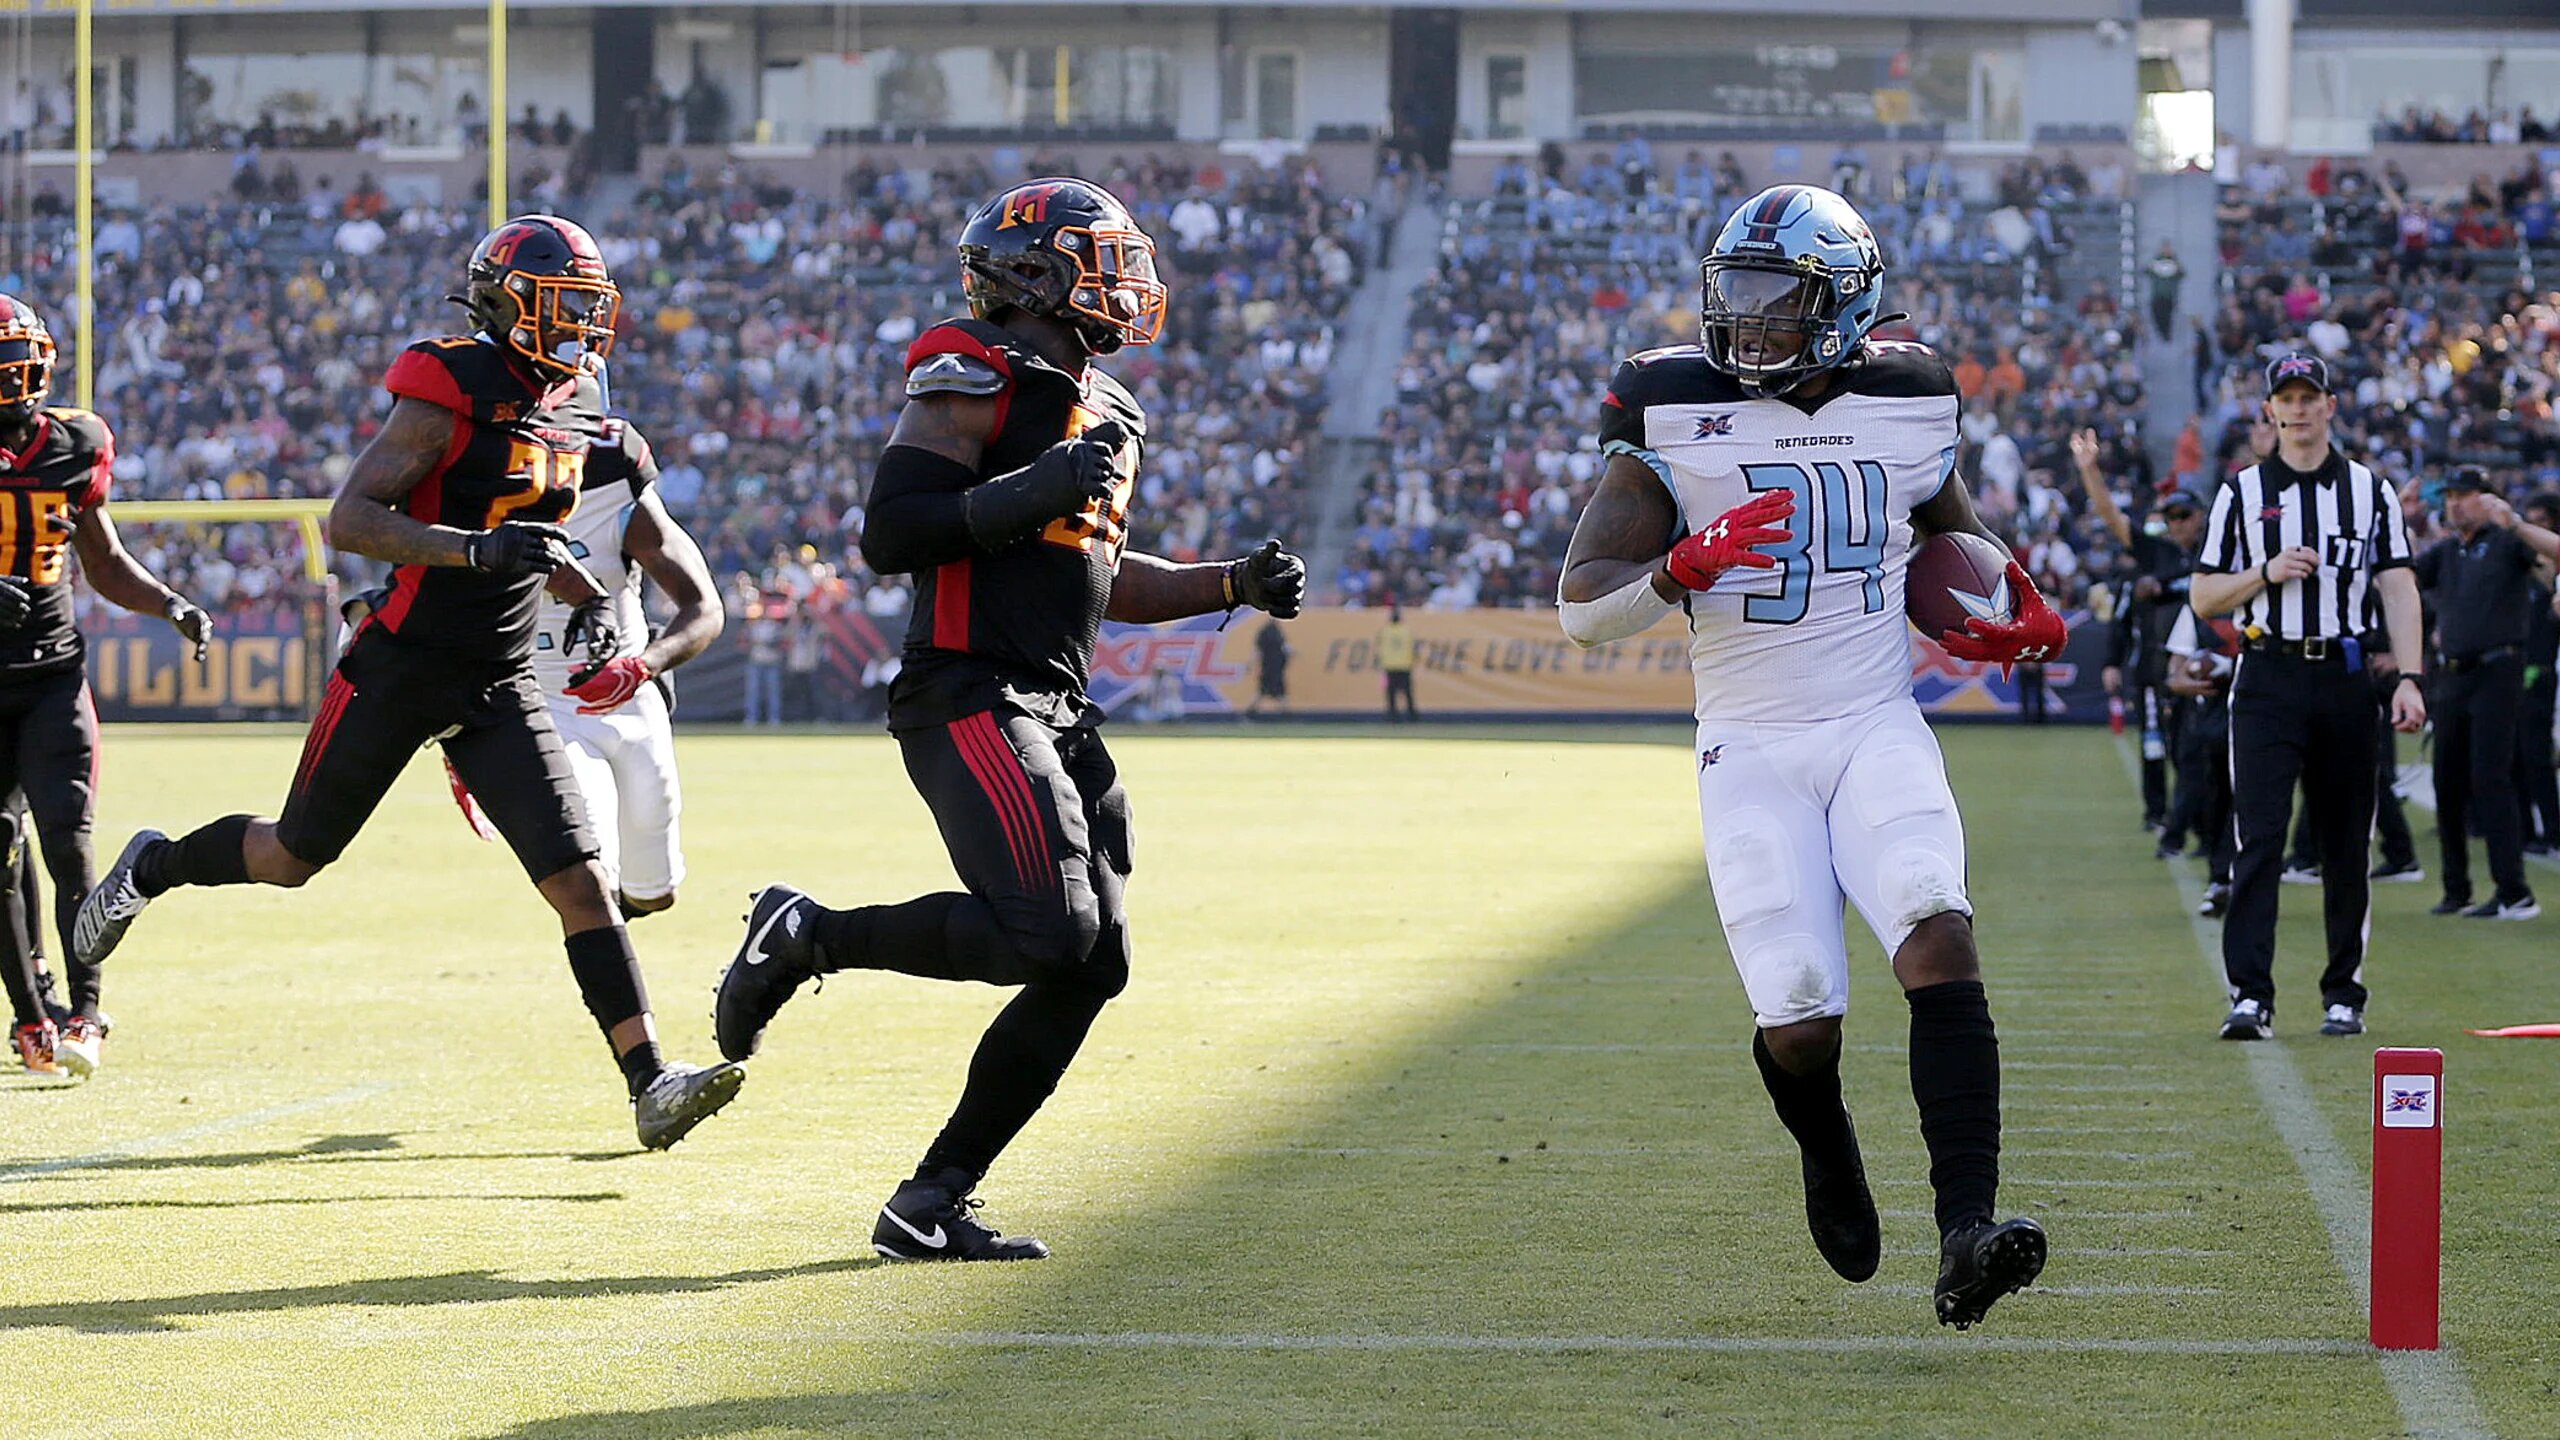 Dallas Renegades running back Cameron Artis-Payne scores a touchdown against the Los Angeles Wildcats